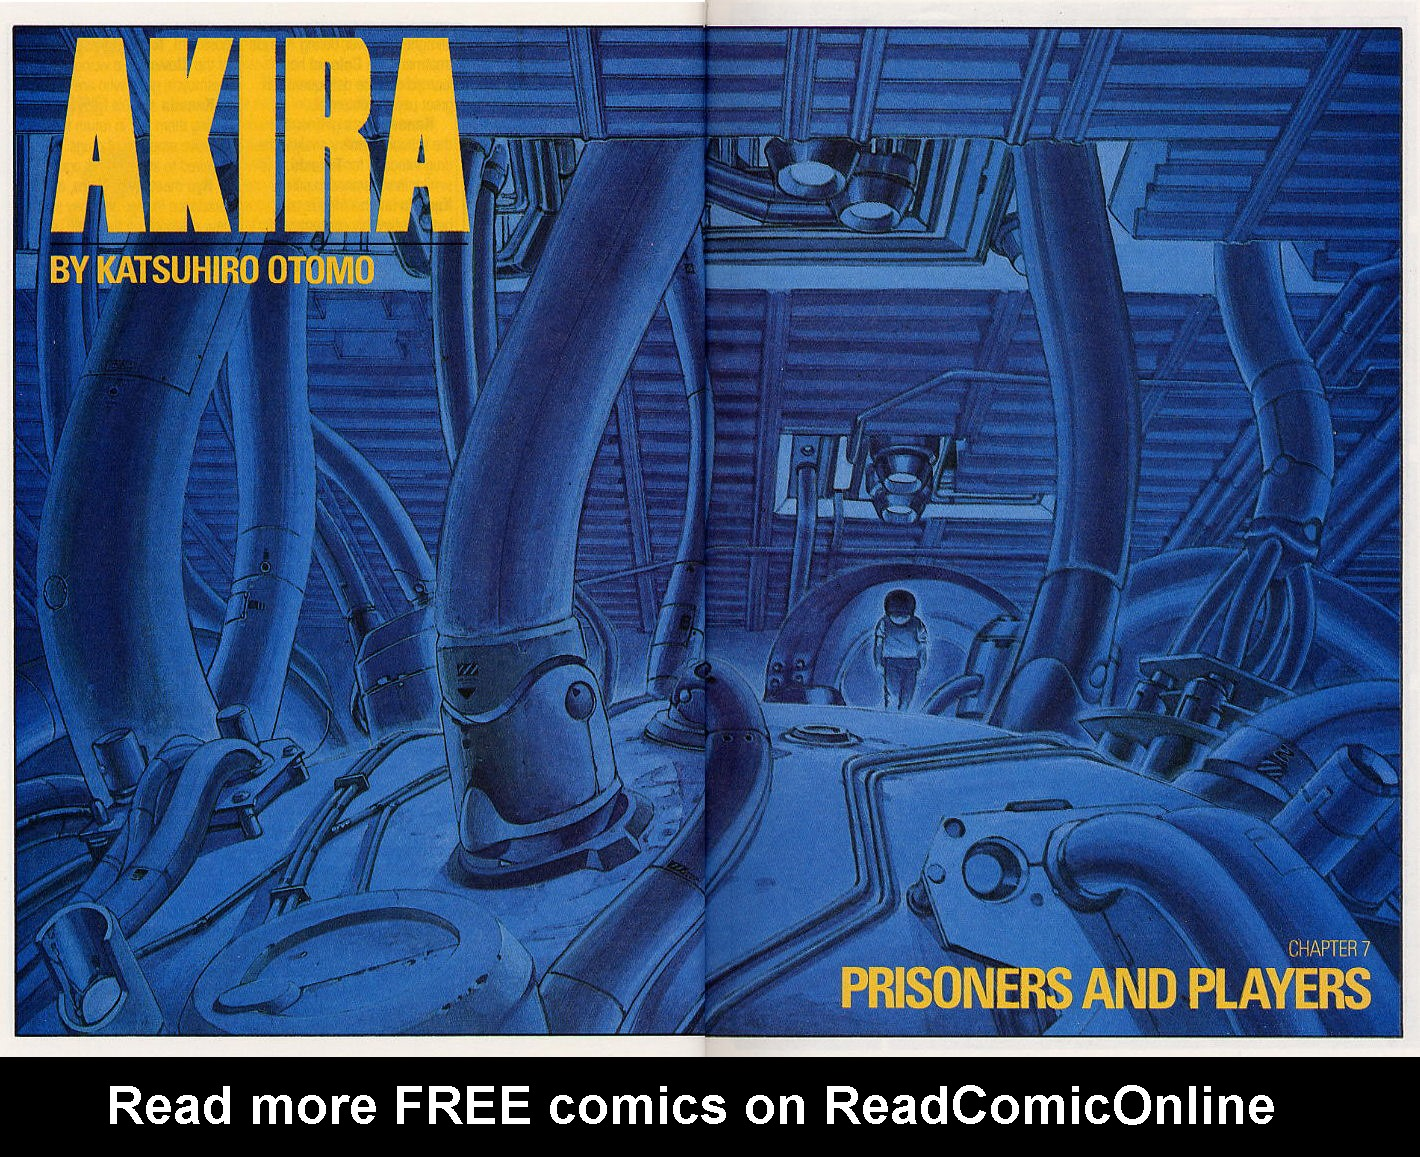 Read online Akira comic -  Issue #7 - 6